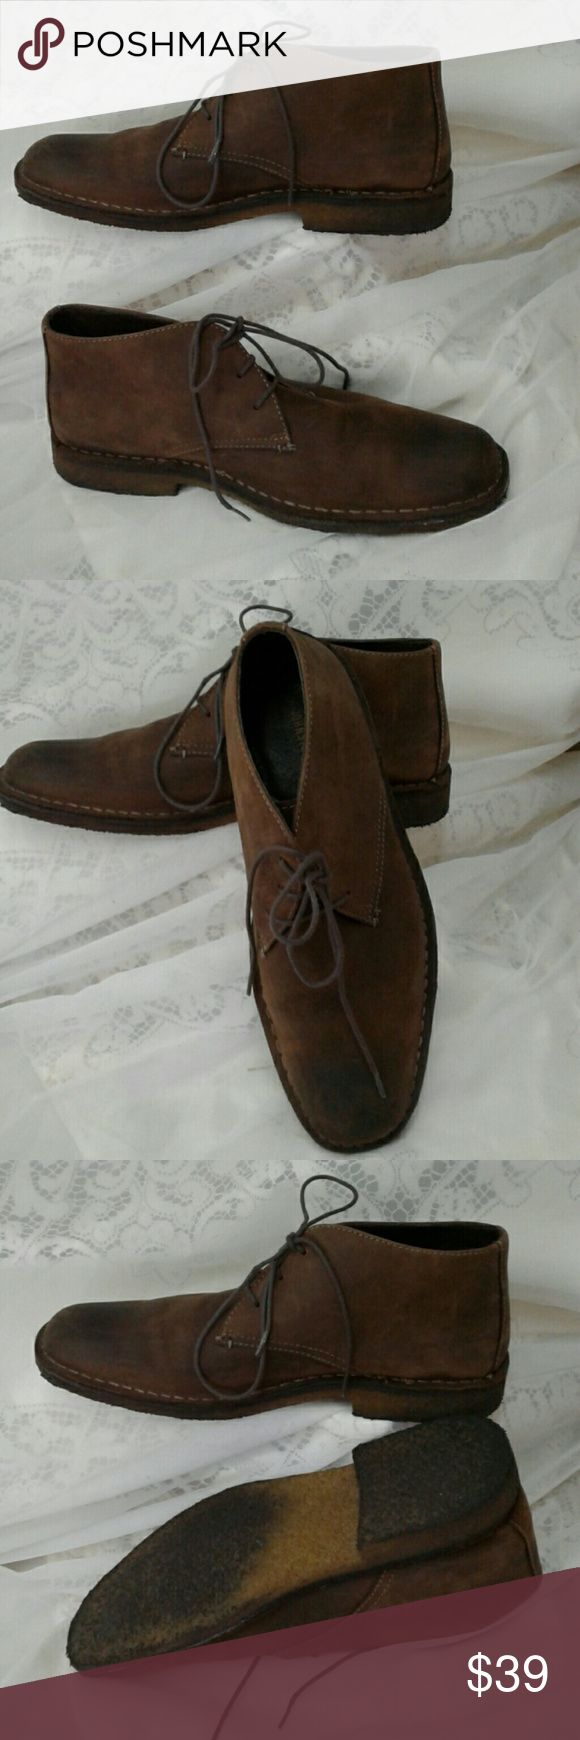 JOHNSTON & MURPHY WAXED NUBUCK  CHUKKA BOOTS CREPE SOLES, LACE CLOSURE, LEATHER LINED, MEMORY FOAM PADDED FOOTBED , GREAT PRE-LOVED CONDITION JOHNSTON AND MURPHY  Shoes Chukka Boots